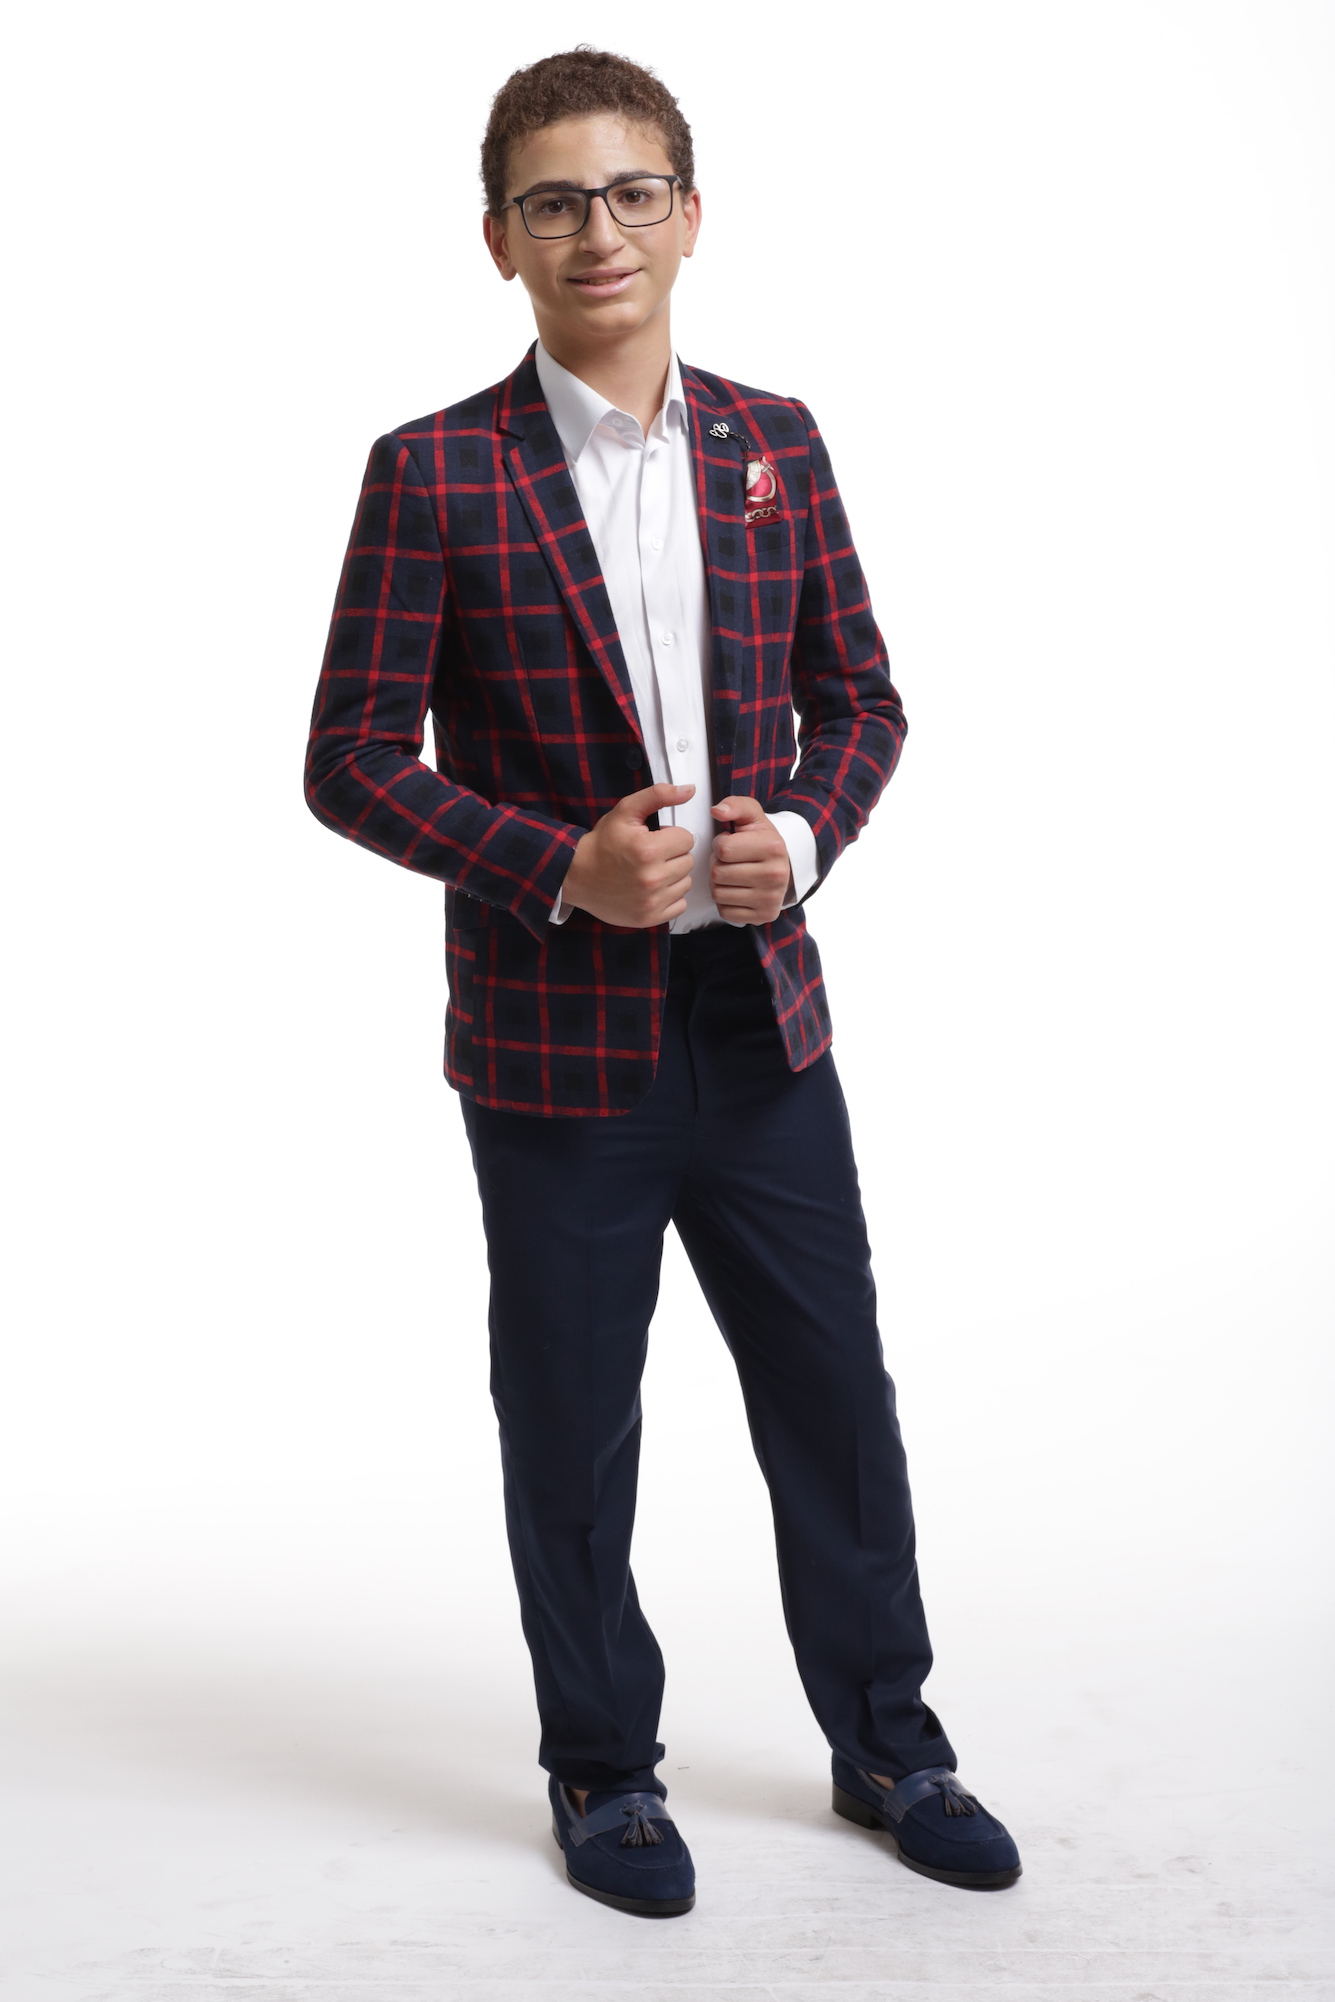 Wild Red Checkered Boys's Blazers - Sports Coat Jacket EBBW1866B